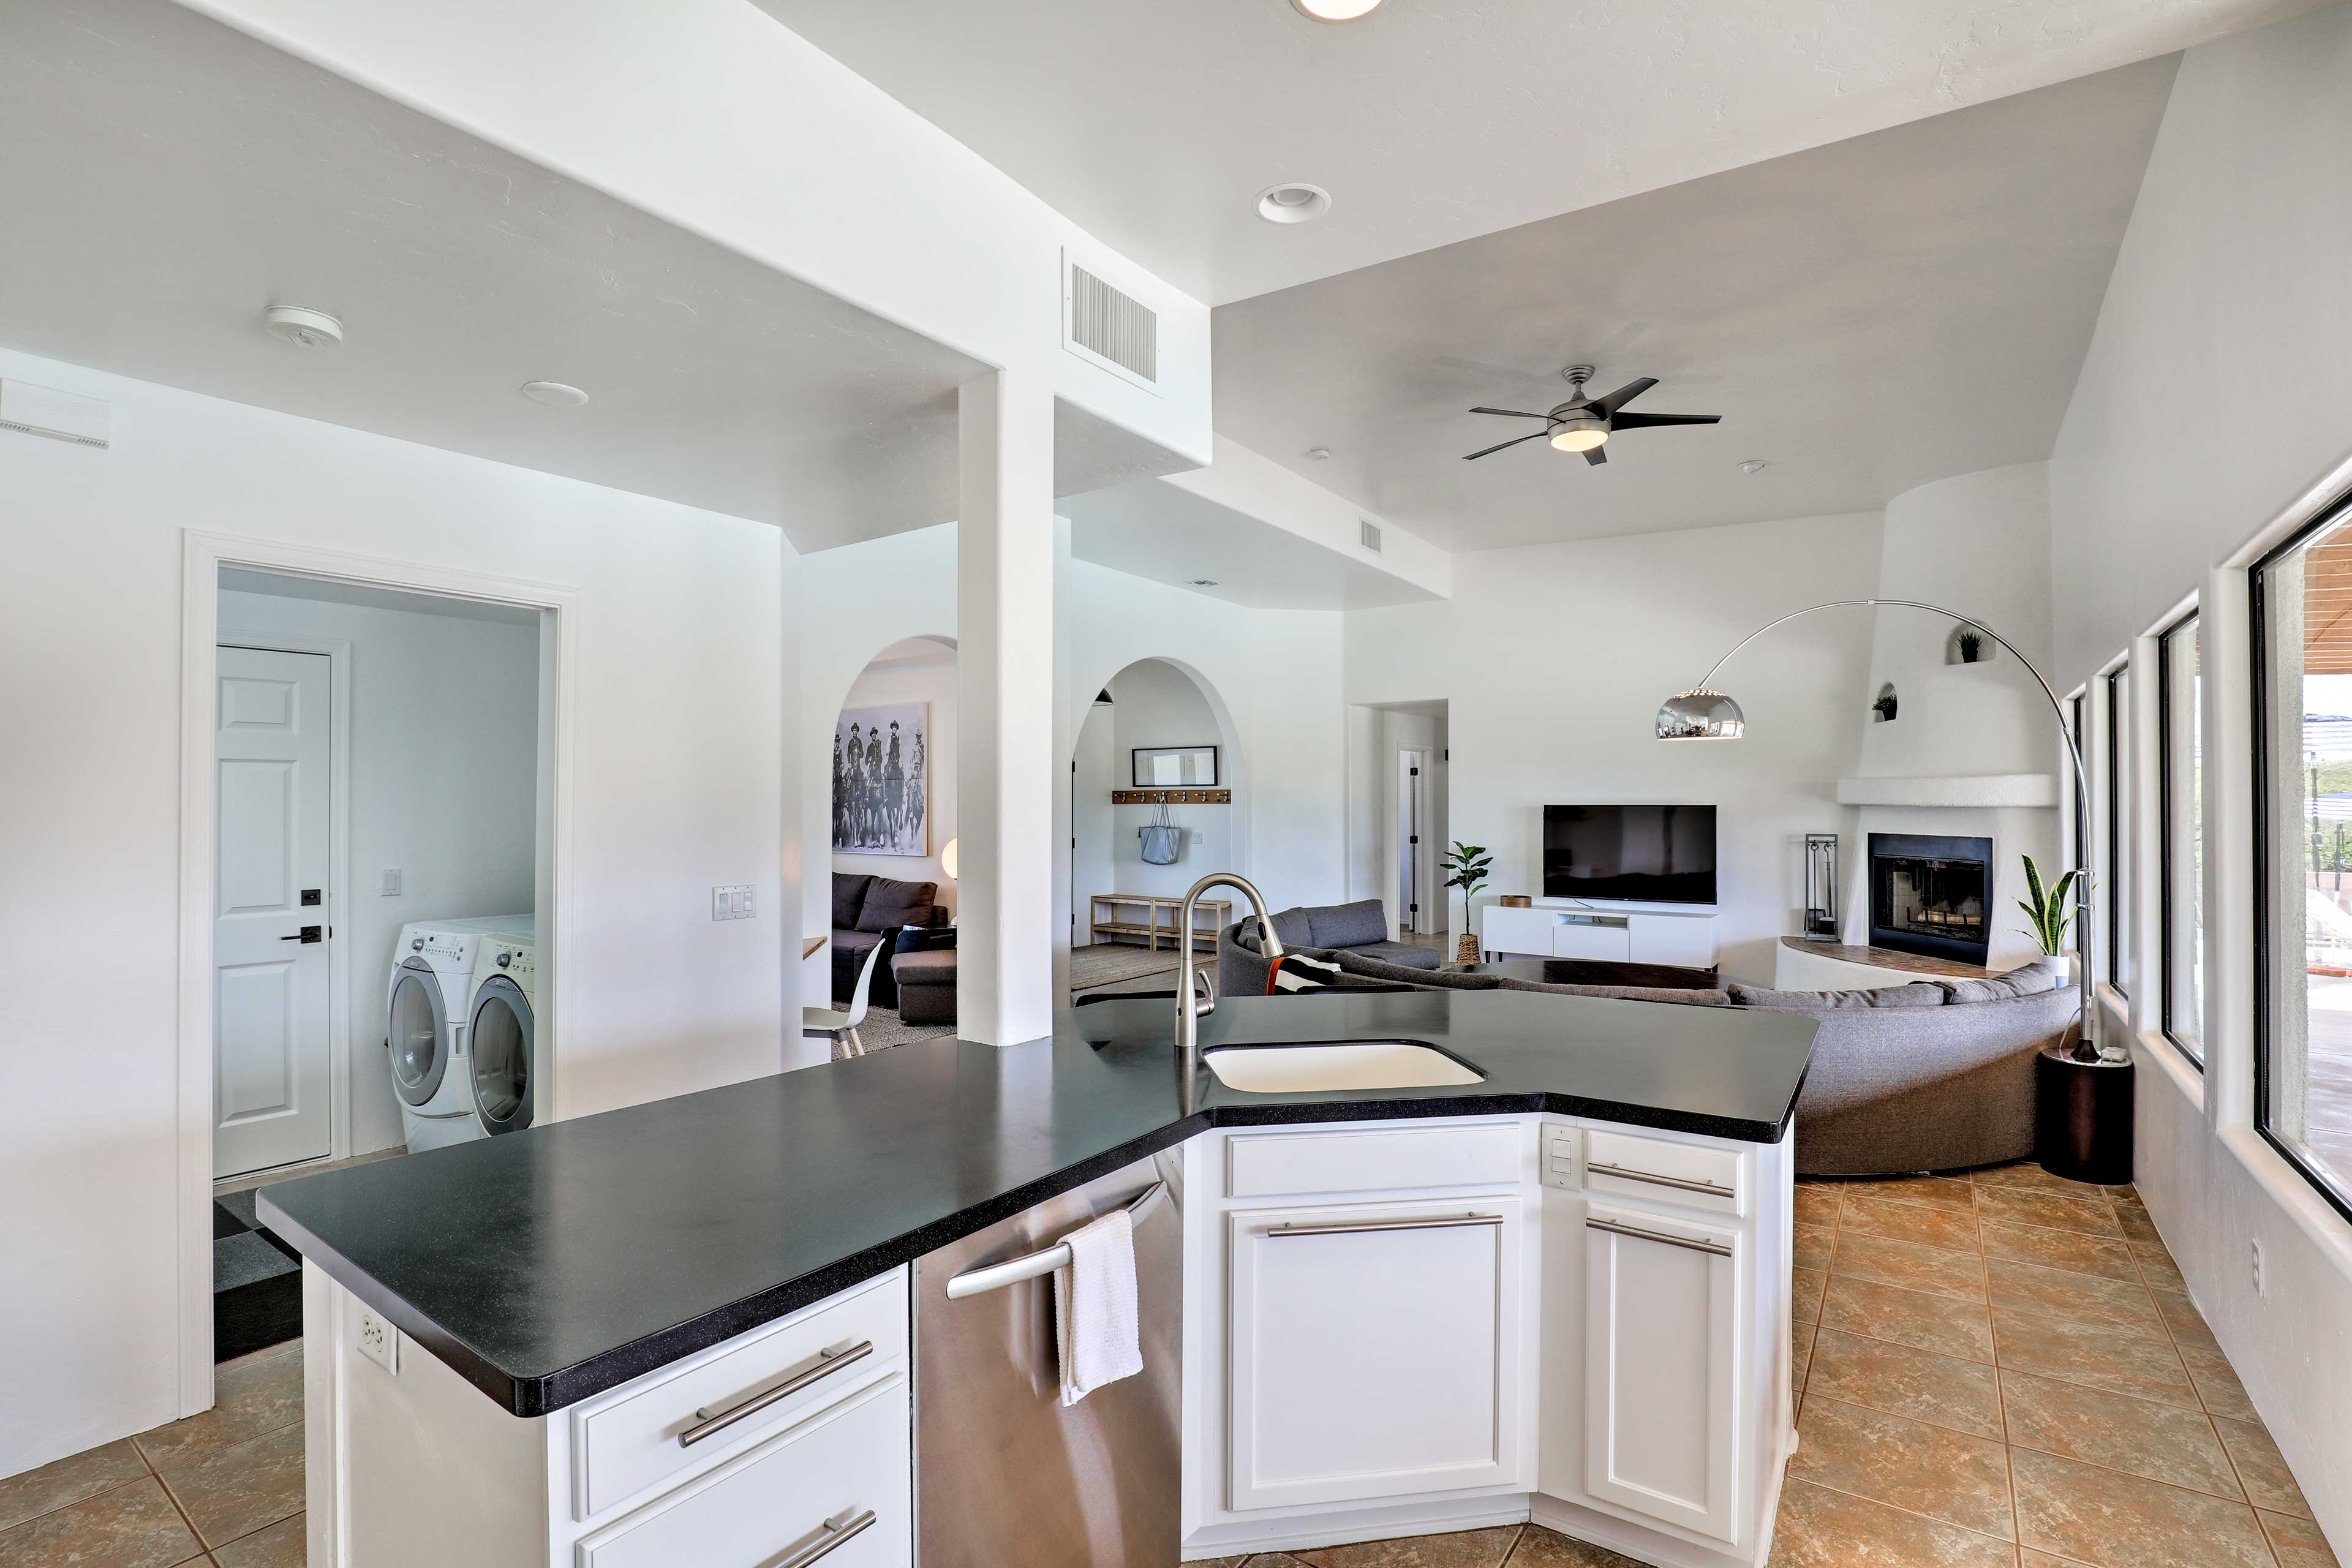 Serve food for large groups off of this kitchen island.